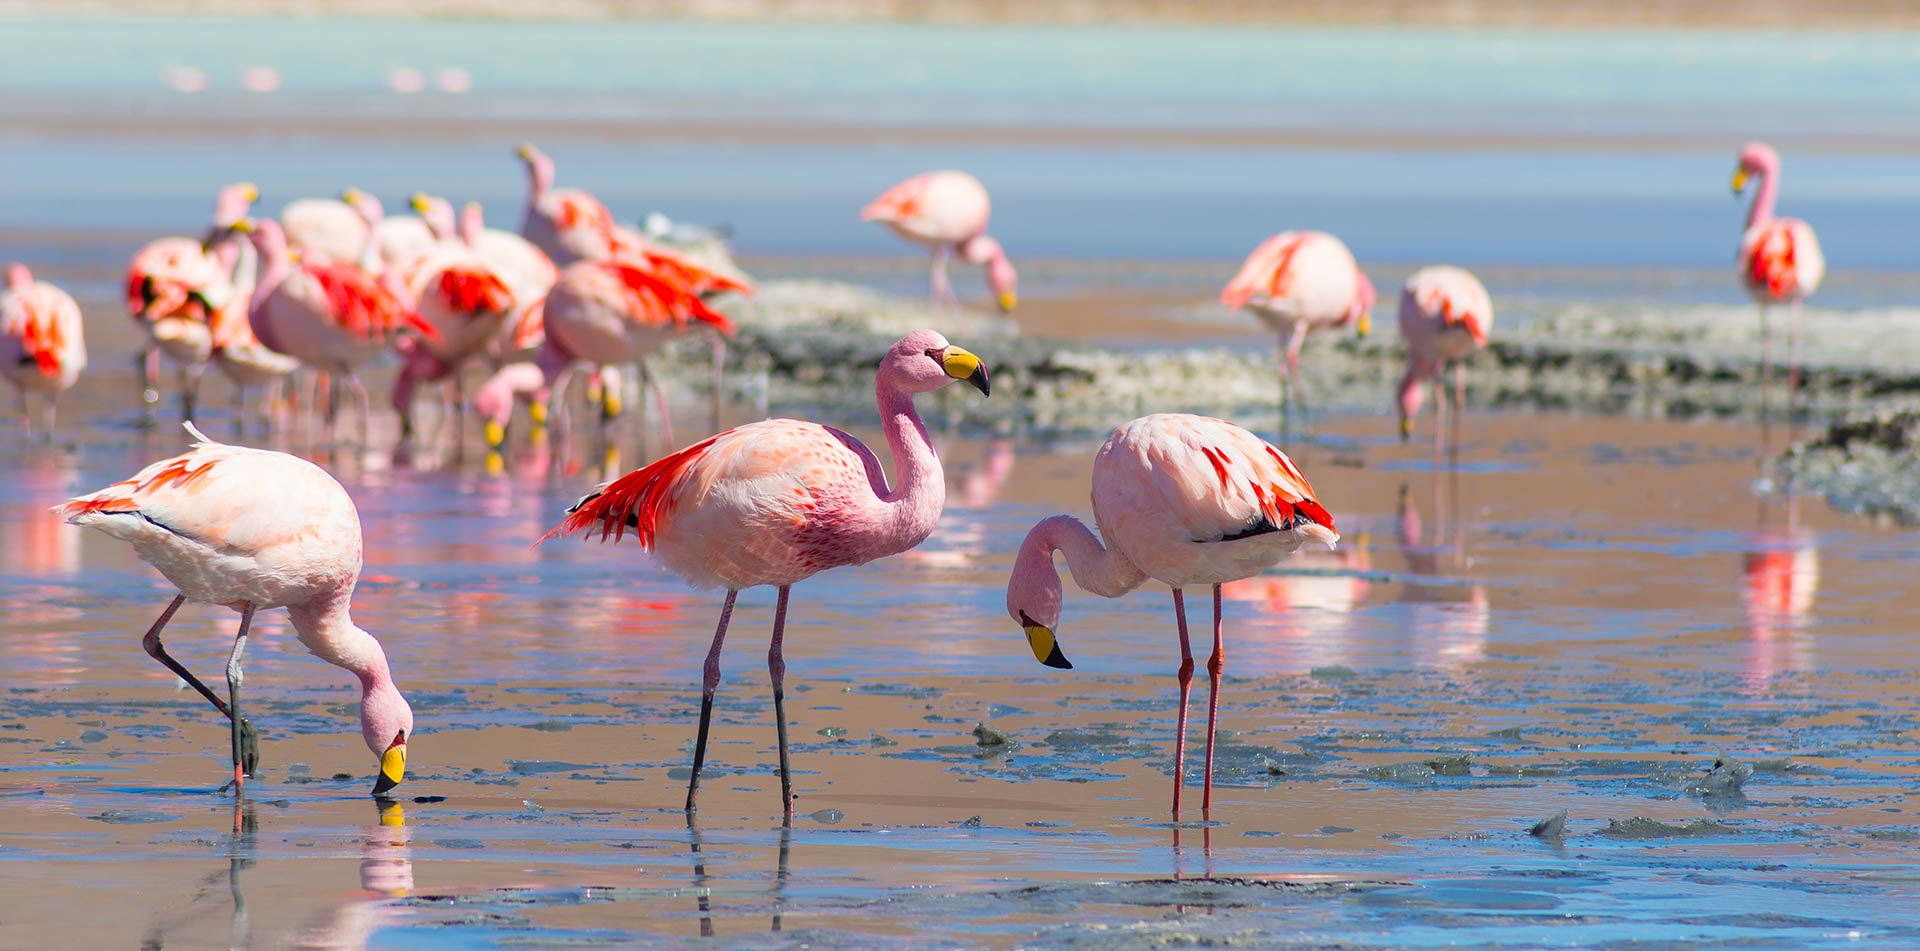 South America Chile Wildlife Flamingos Nature Natural Habitat - luxury vacation destinations